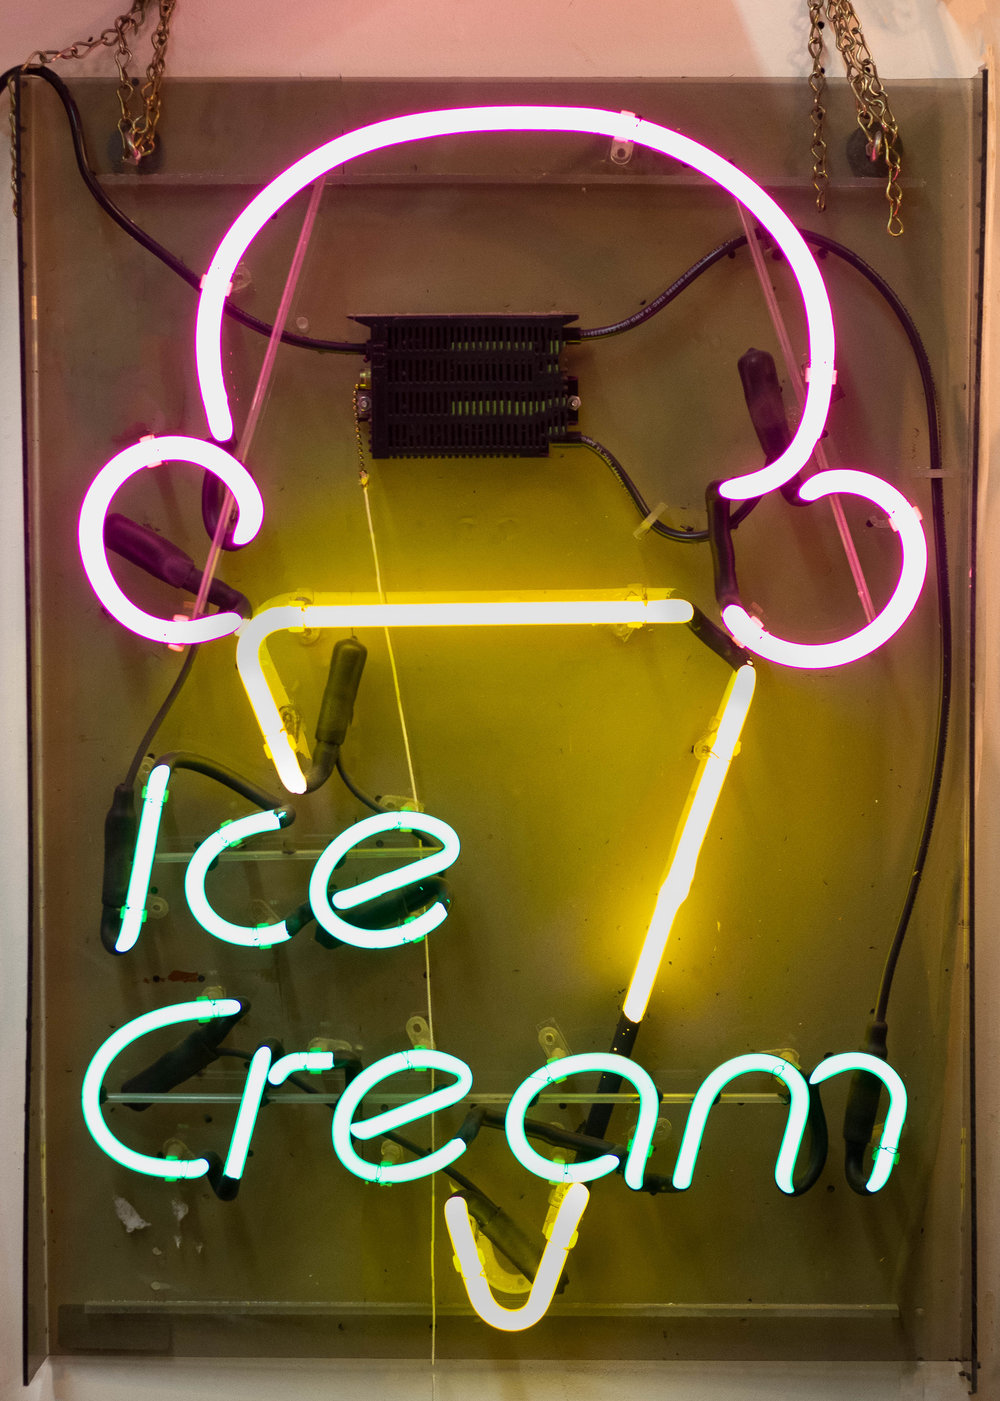 Ice Cream Neon Sign | Refindings York, PA | Architectural Salvage & Antiques